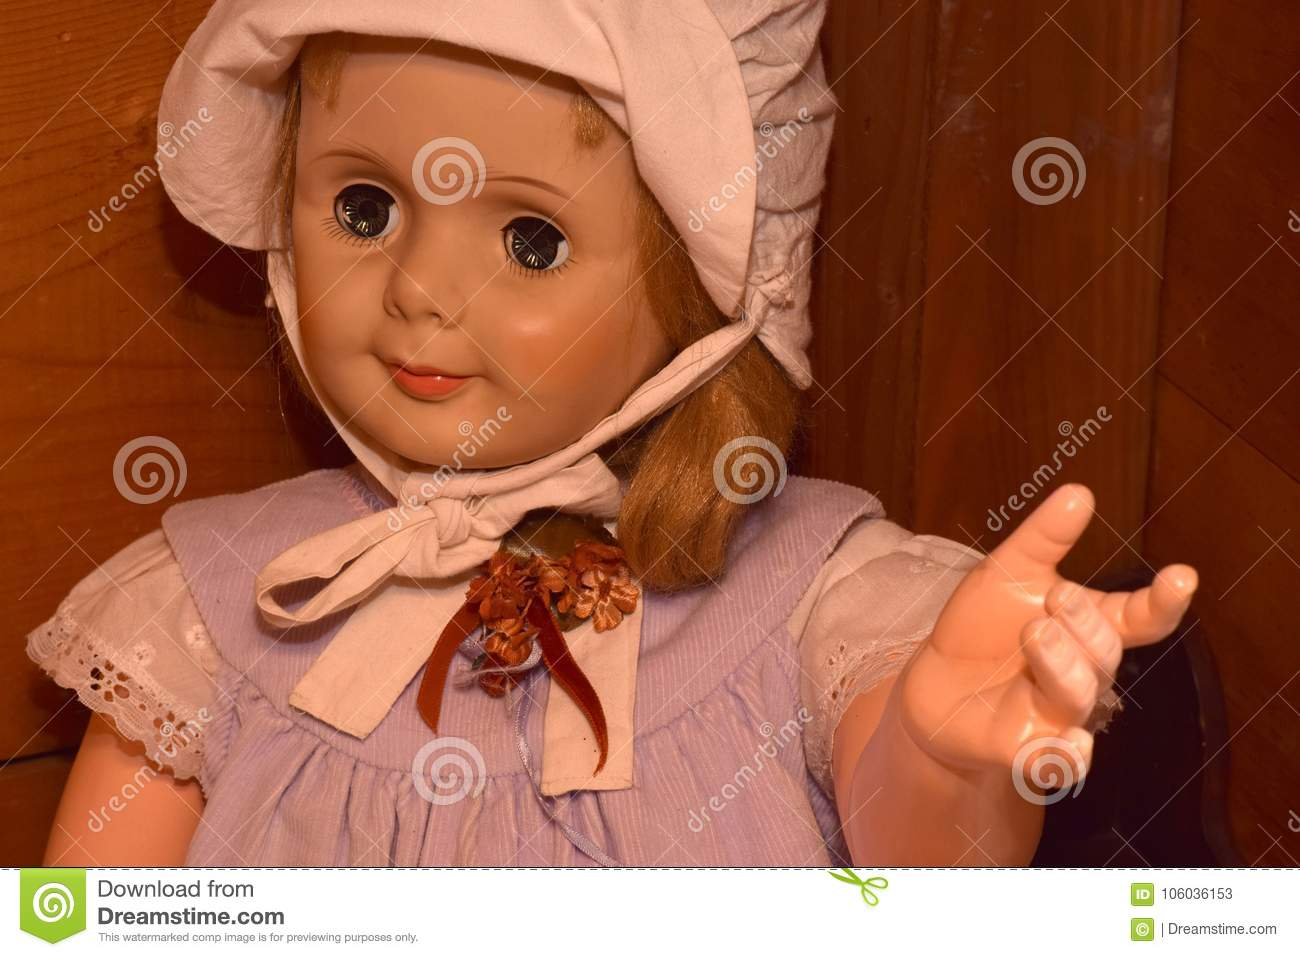 dolls with creepy eyes stock image. image of texture - 106036153